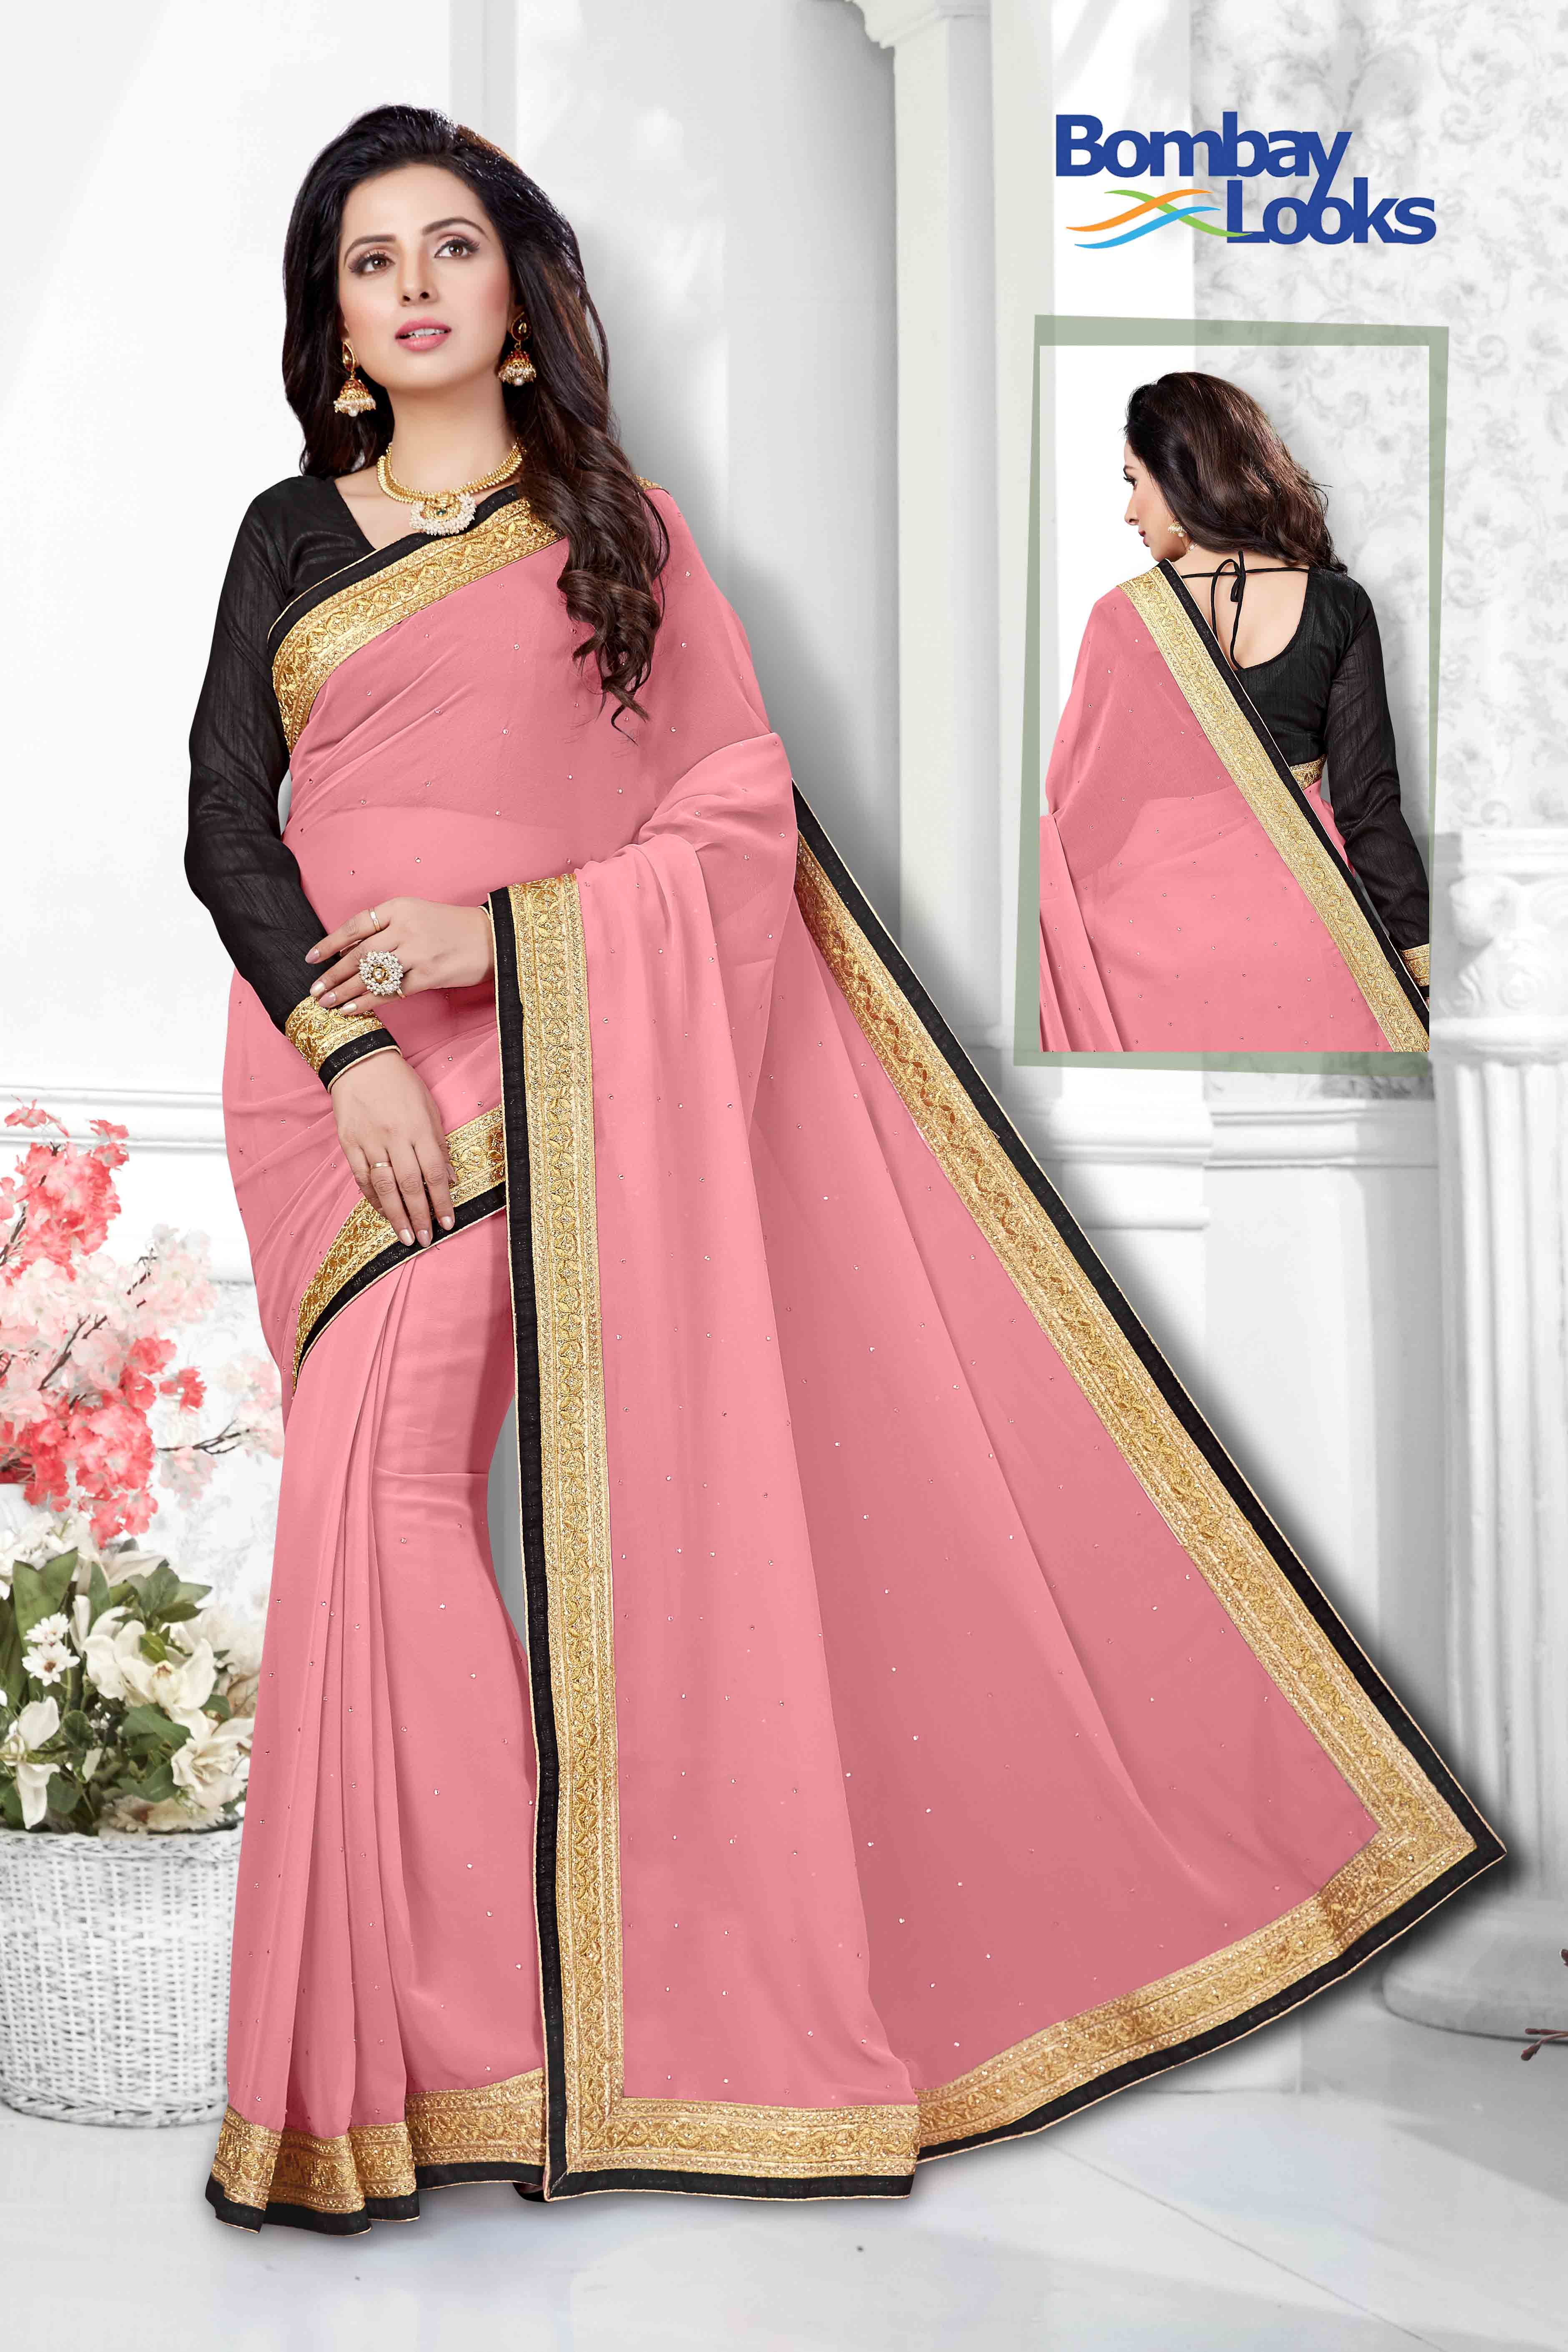 Classic dutsy pink georgette saree with elegant gold border